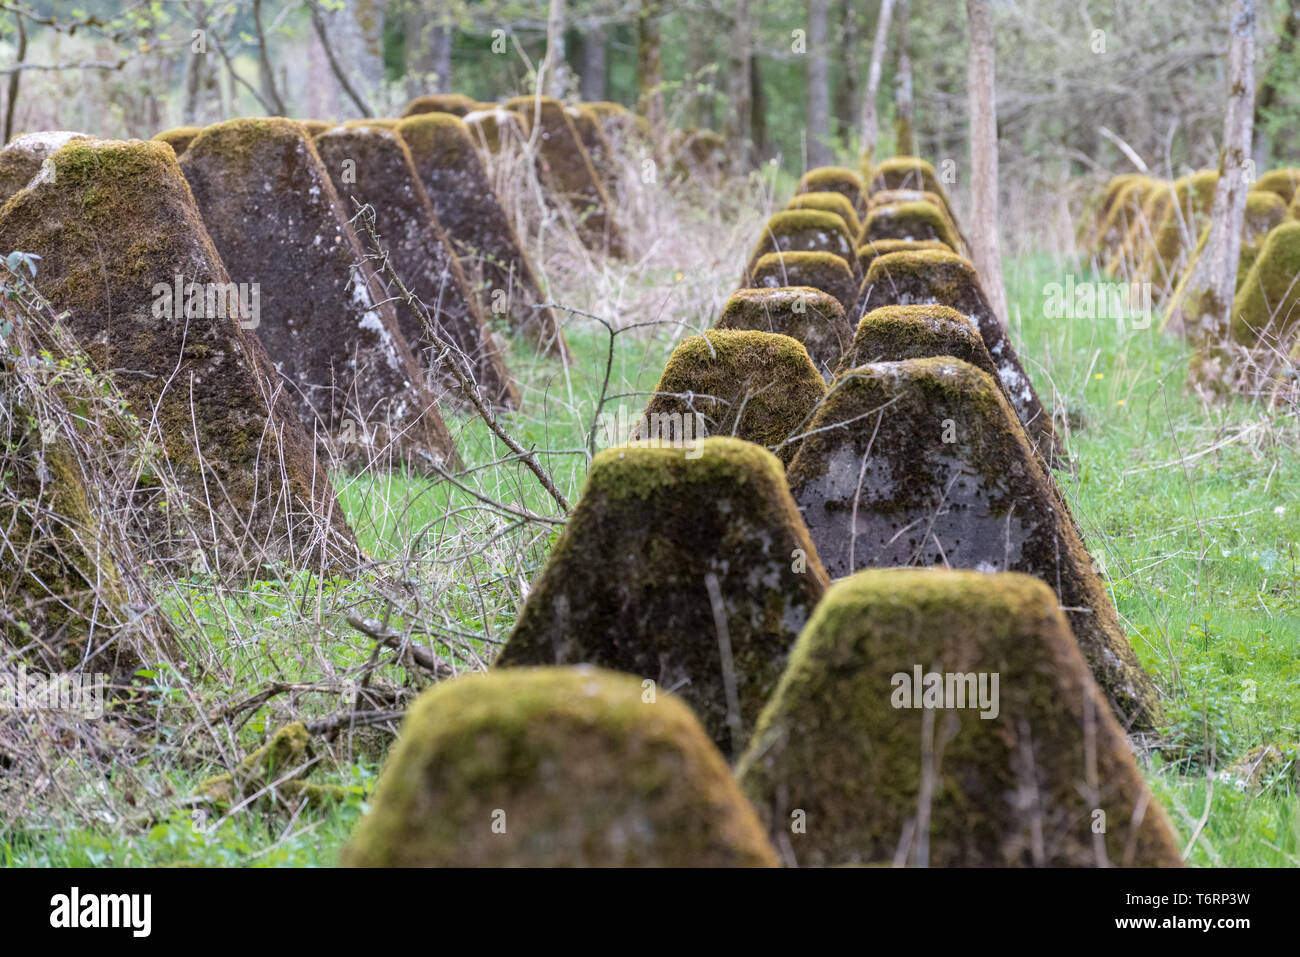 Dragon's teeth tank obstacles in the Siegfried Line at Hollerath, Germany - Stock Image